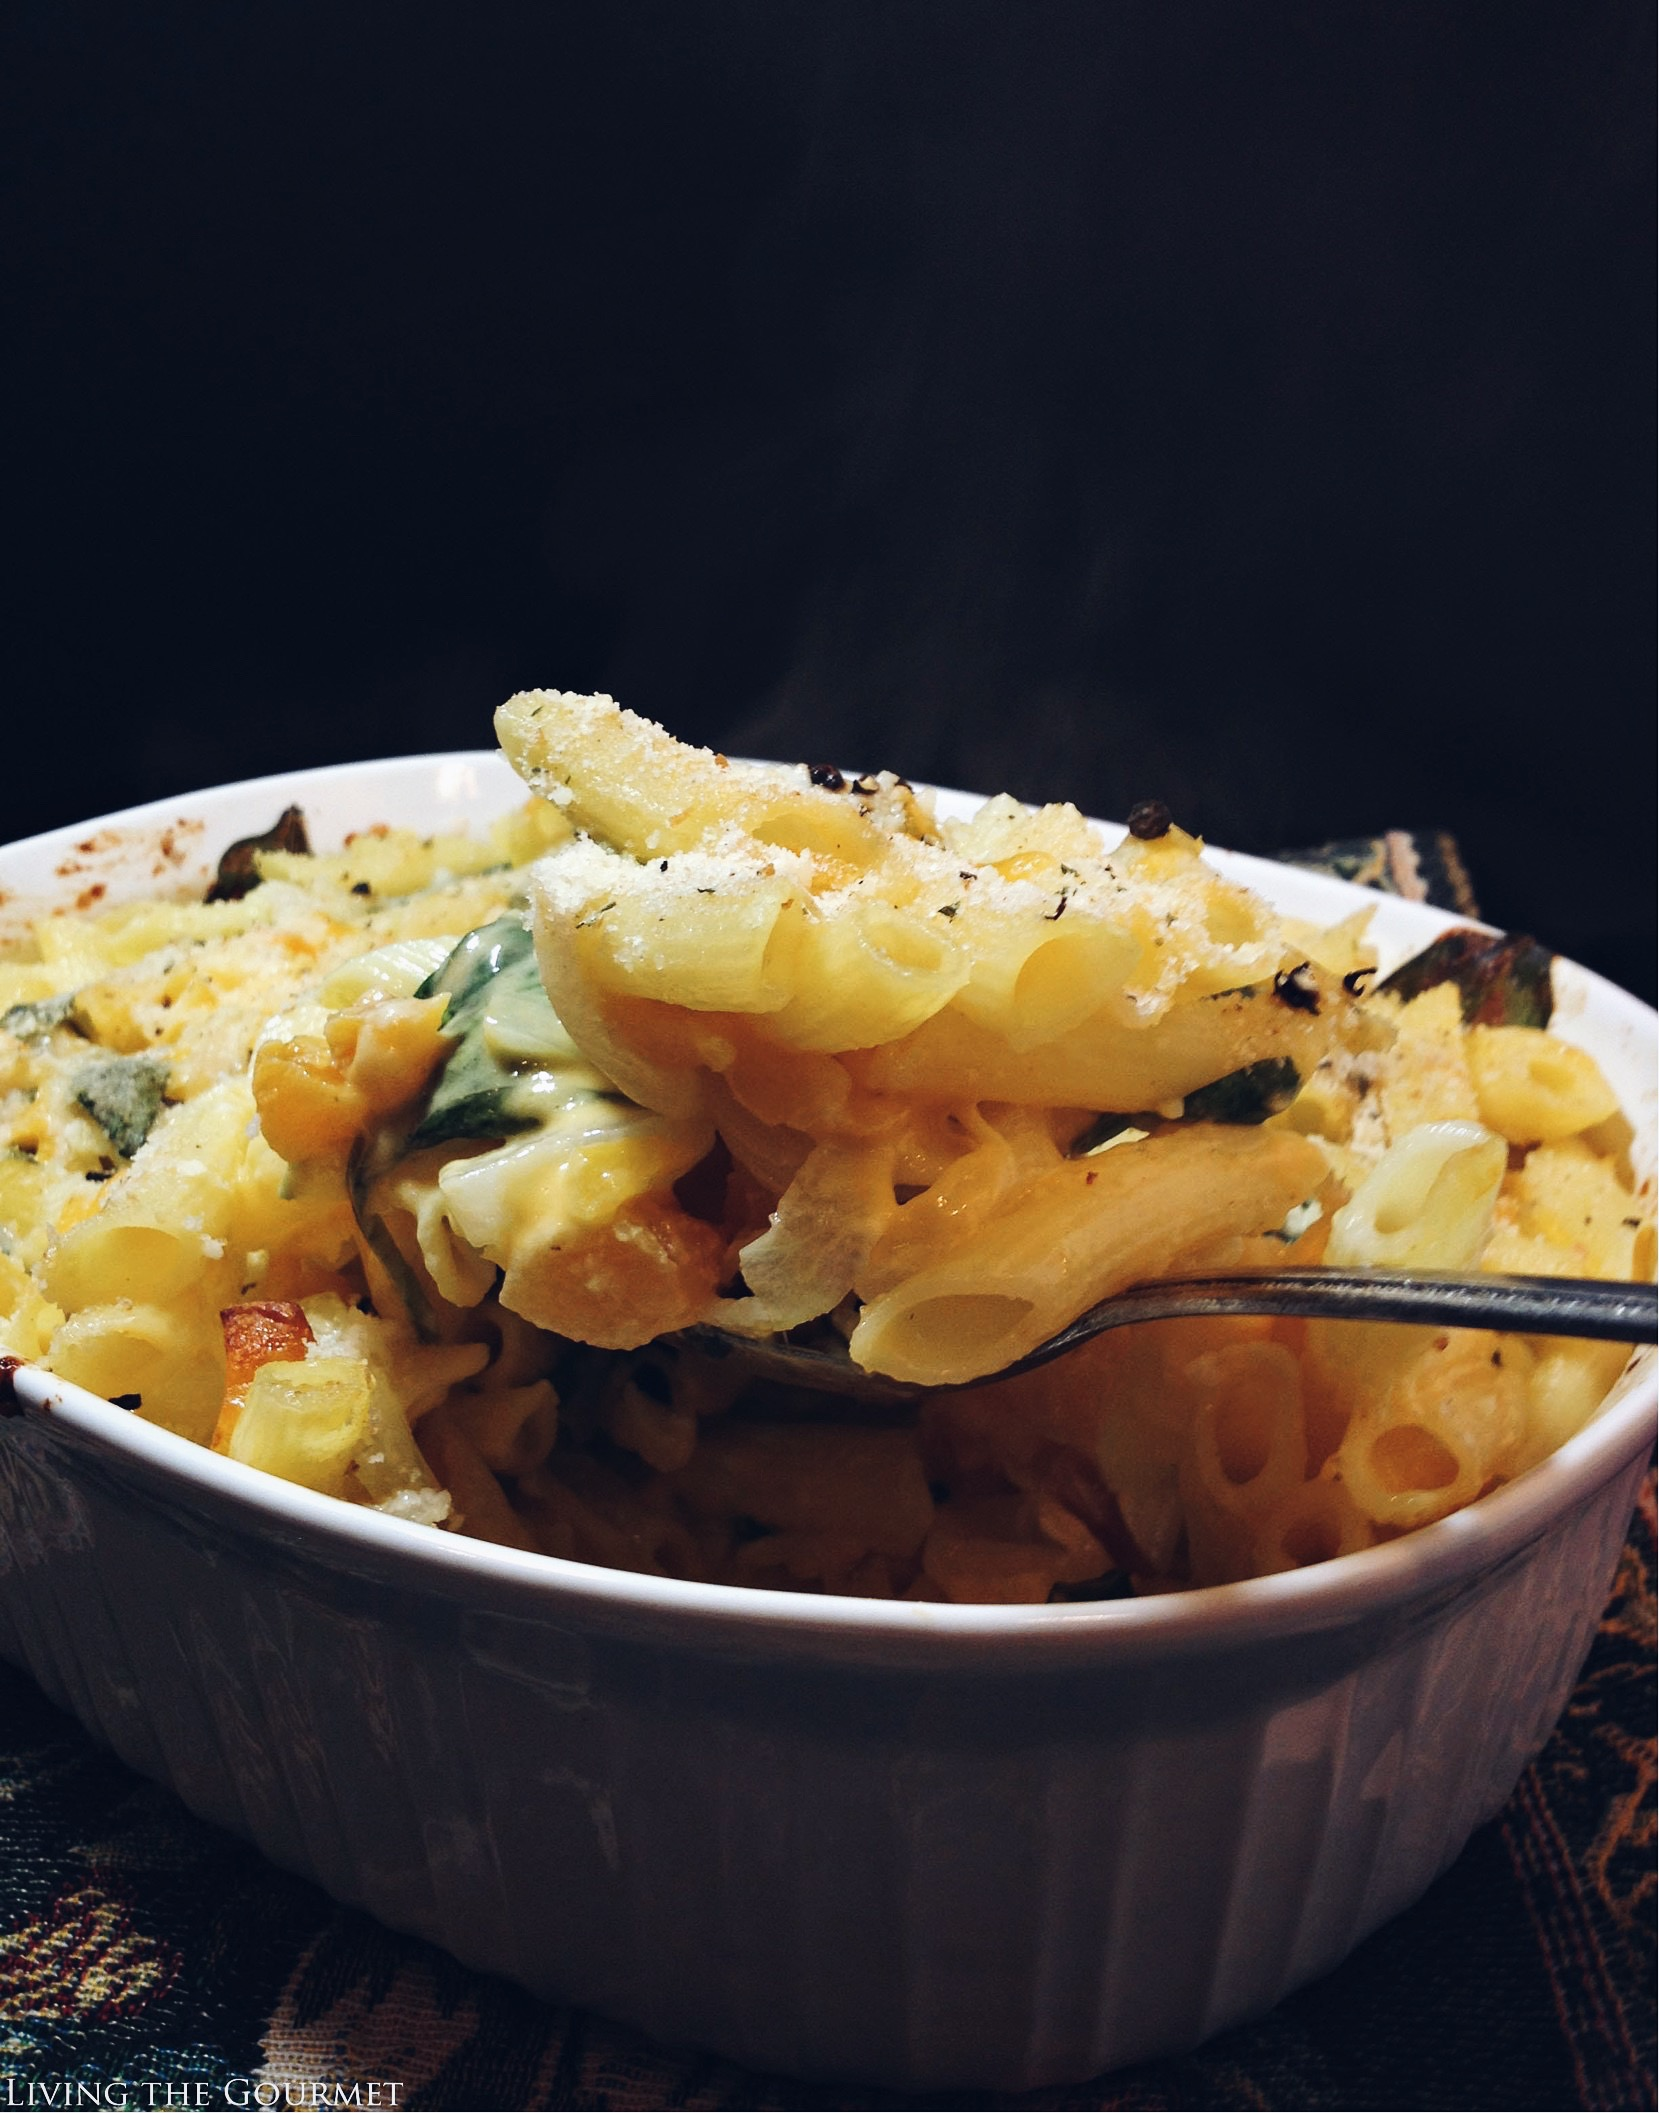 Living the Gourmet: Gluten Free Penne Mac and Cheese | #GlutenFreeBarilla #Pmedia #ad